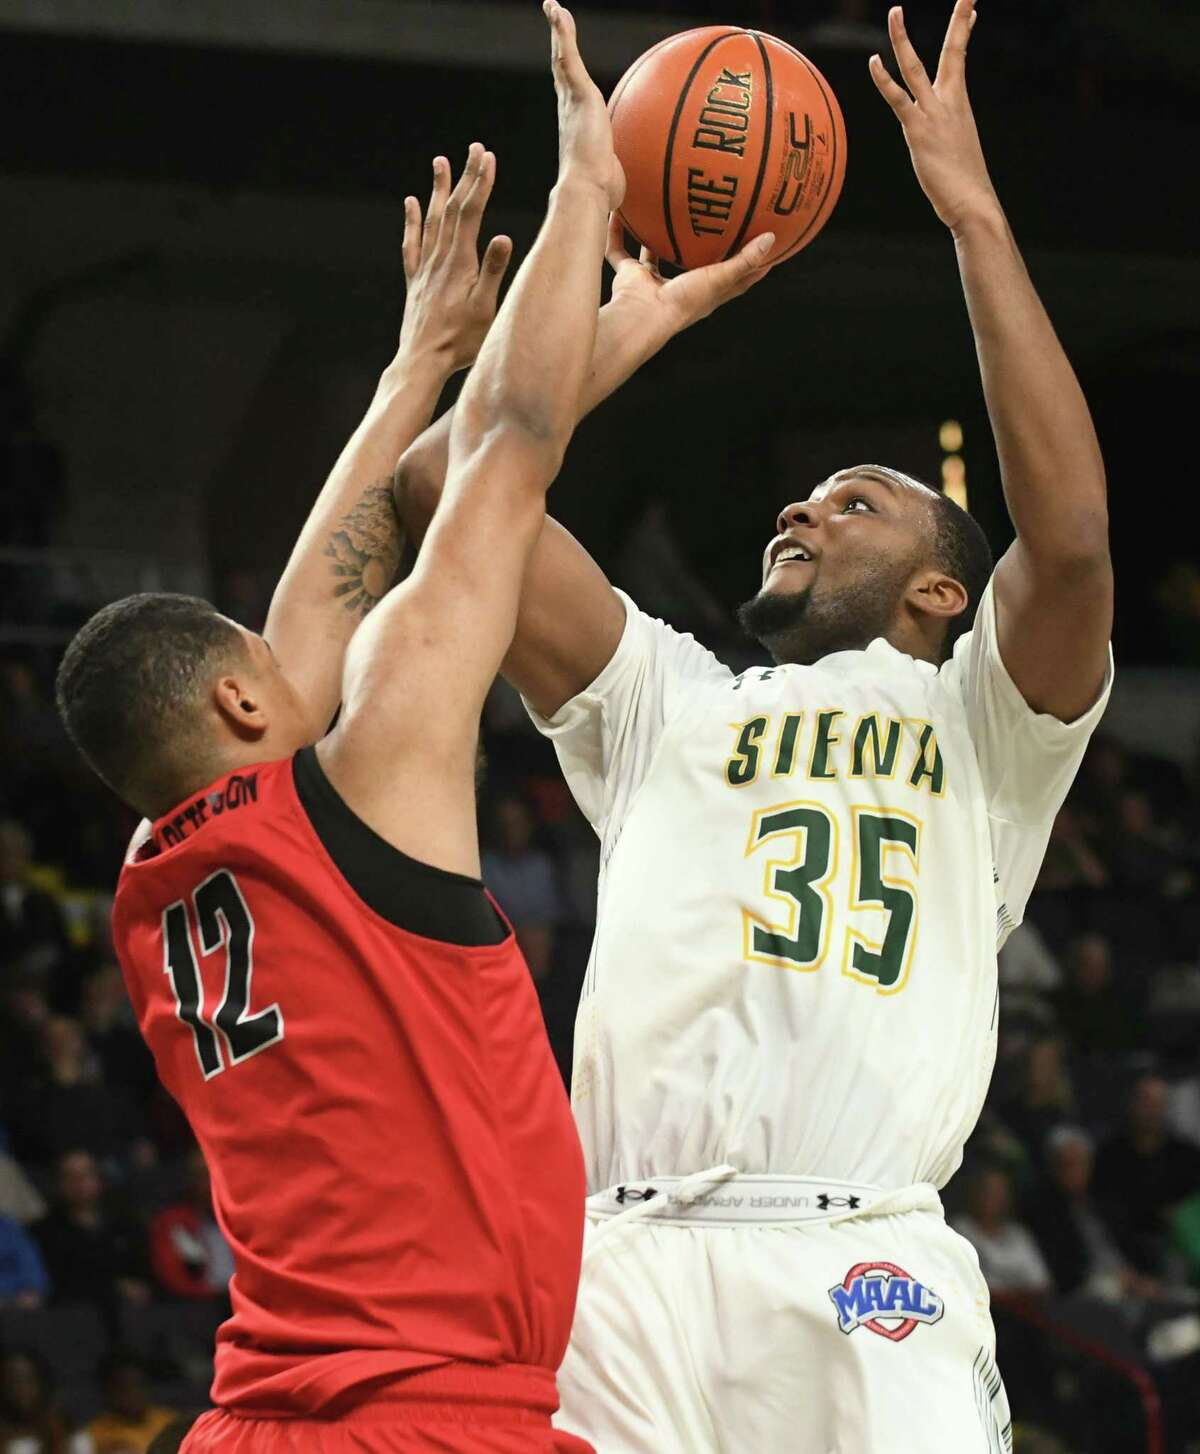 Siena's Sammy Friday gets off a shot guarded by Fairfield's Kevin Senghore-Peterson during a basketball game at Times Union Center on Wednesday, Feb. 21, 2018 in Albany, N.Y. (Lori Van Buren/Times Union)